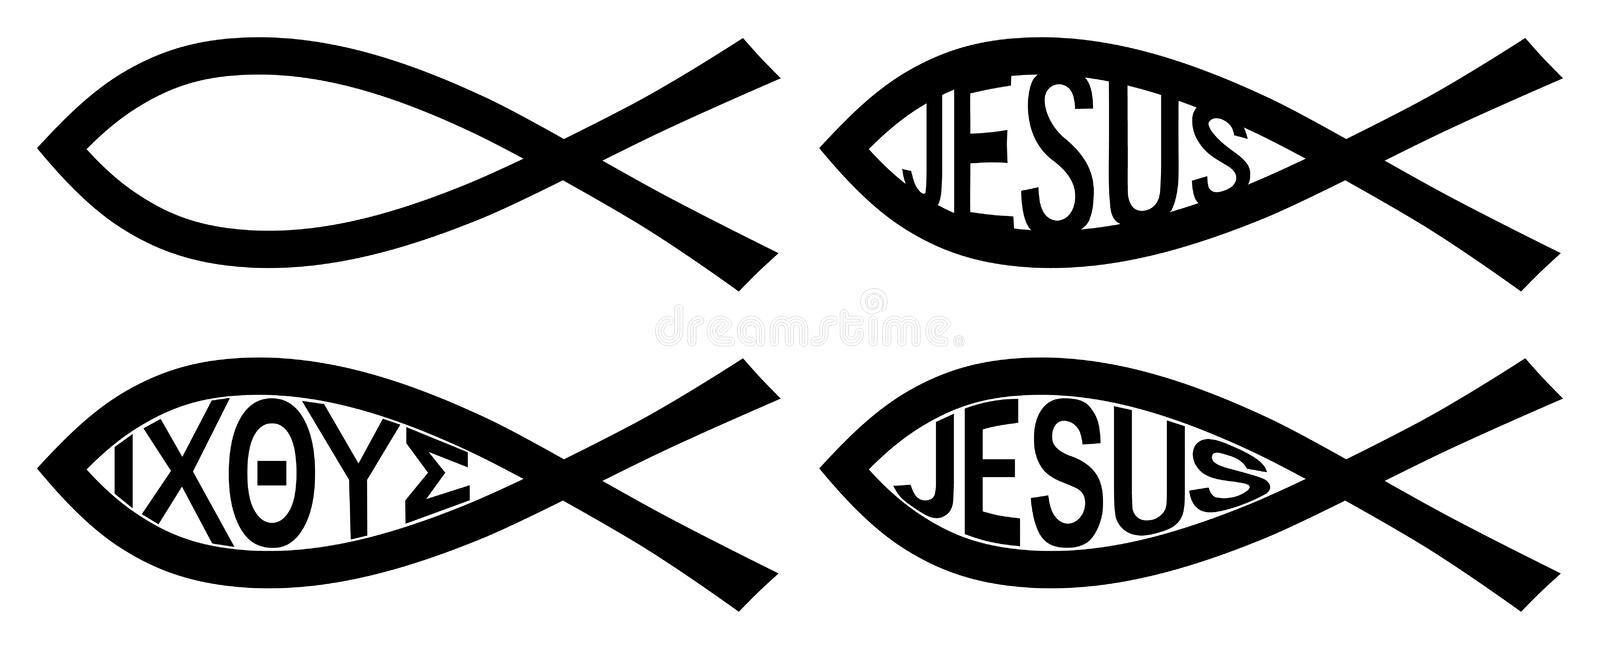 Christian Ichthys symbol. Two black arcs resembling fish. Version without text, with greek letters I CH TH Y S (standing for. Christian Ichthys symbol. Two black royalty free illustration